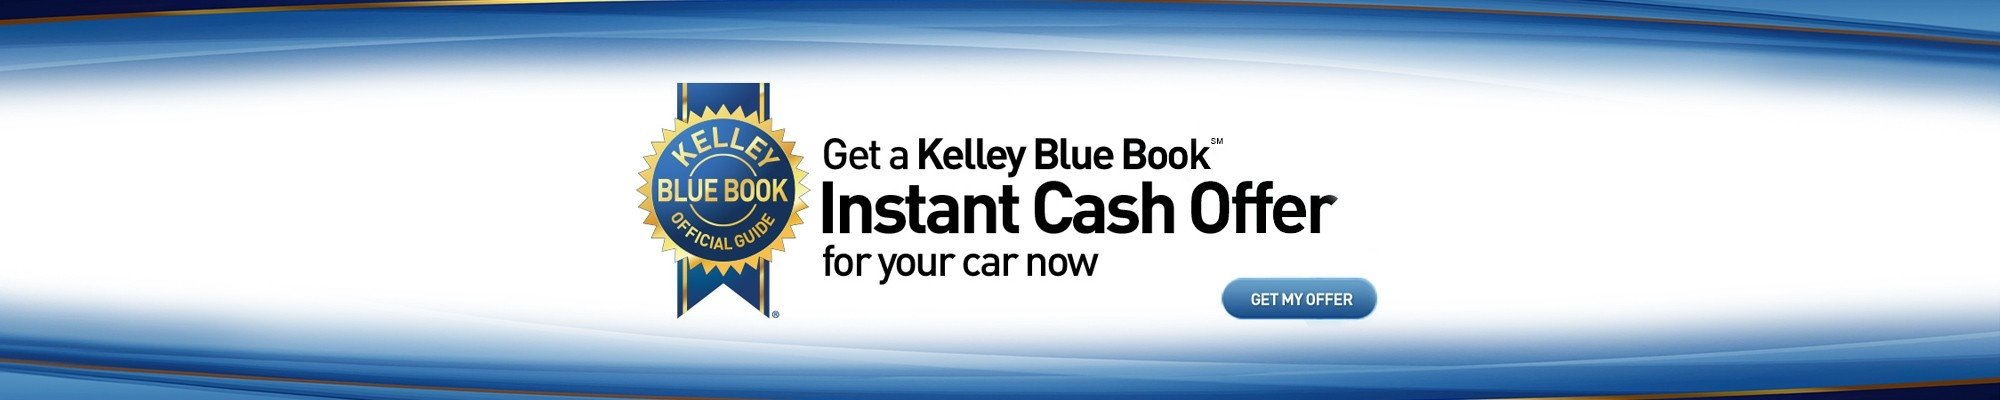 Get Your KBB Instant Cash Offer at Park Cities Ford of Dallas